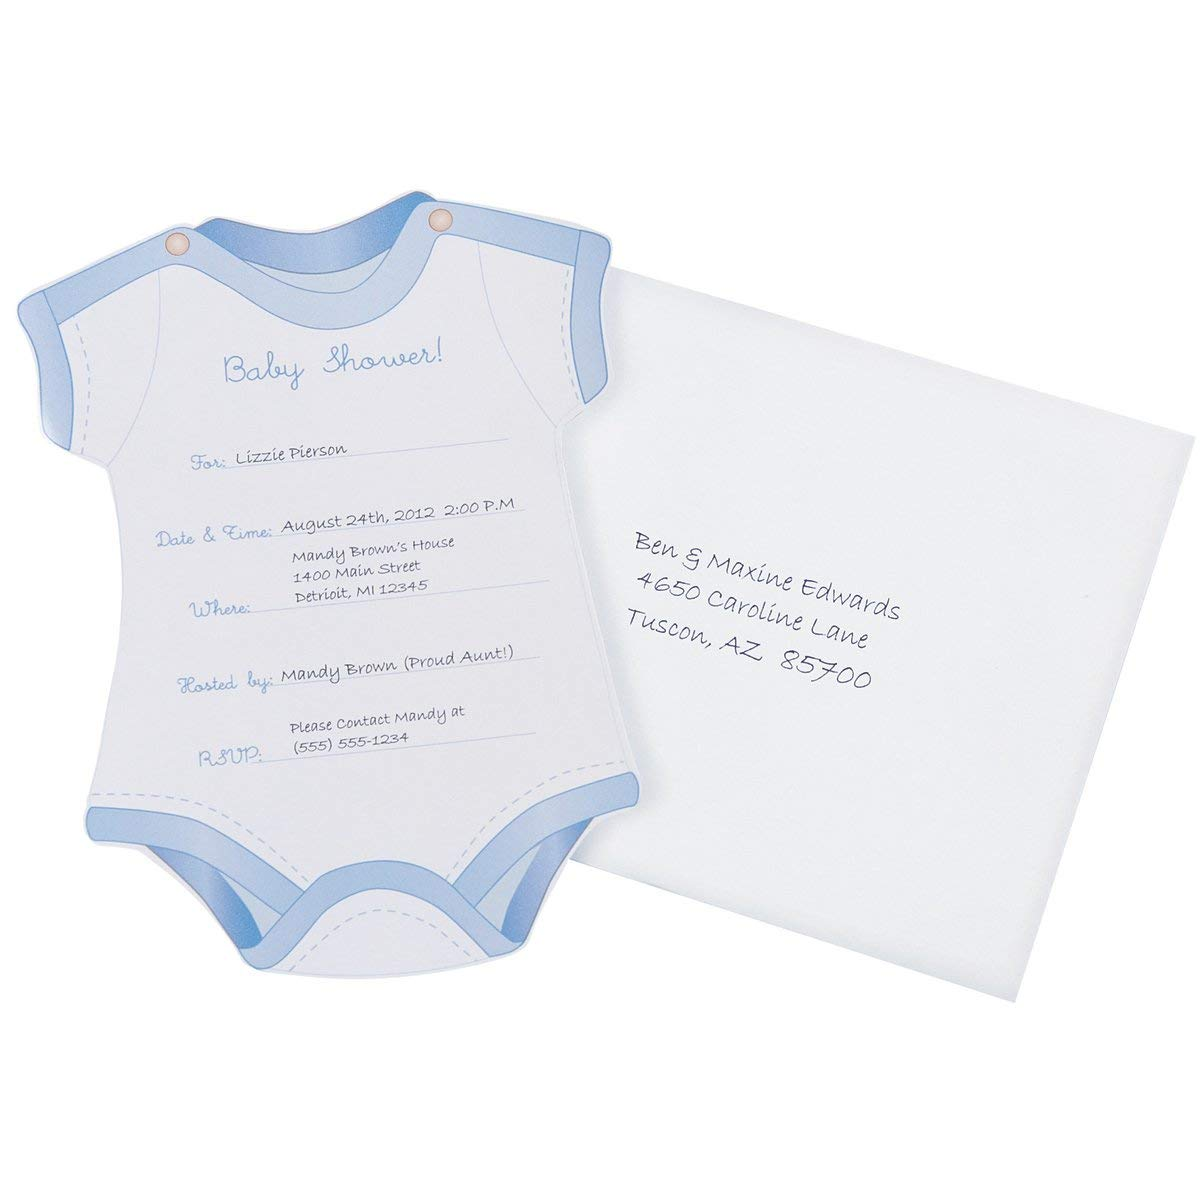 Full Size of Baby Shower:baby Boy Shower Ideas Free Printable Baby Shower Games Free Baby Shower Ideas Unique Baby Shower Decorations Baby Shower Favors Free Baby Shower Ideas Shower Invitations Baby Shower Decorations For Girls